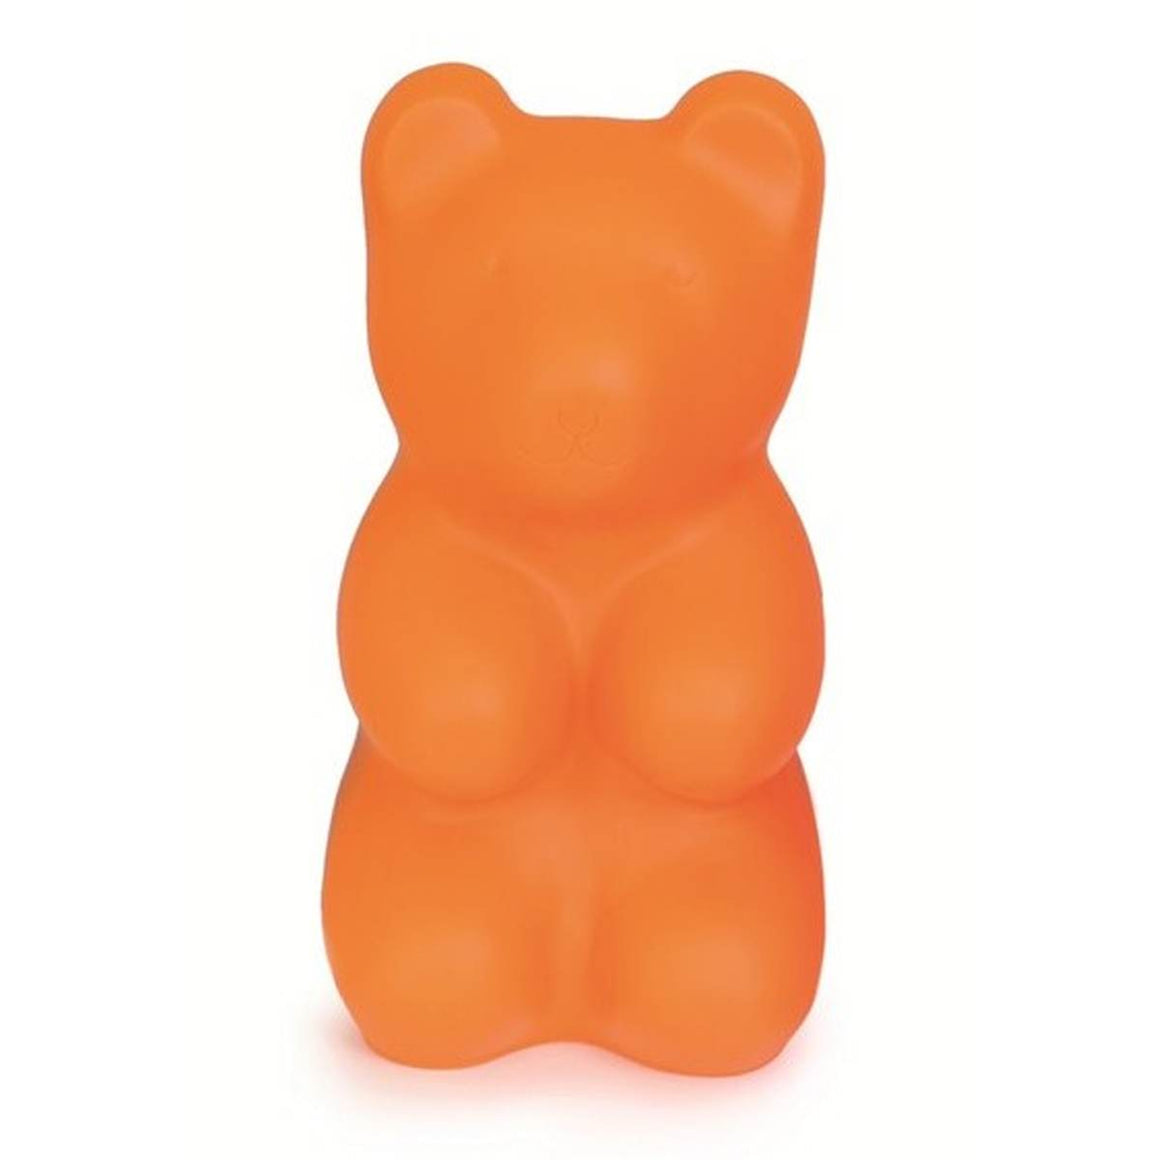 A large orange plastic moulded night light in the shape of an oversized gummy bear.